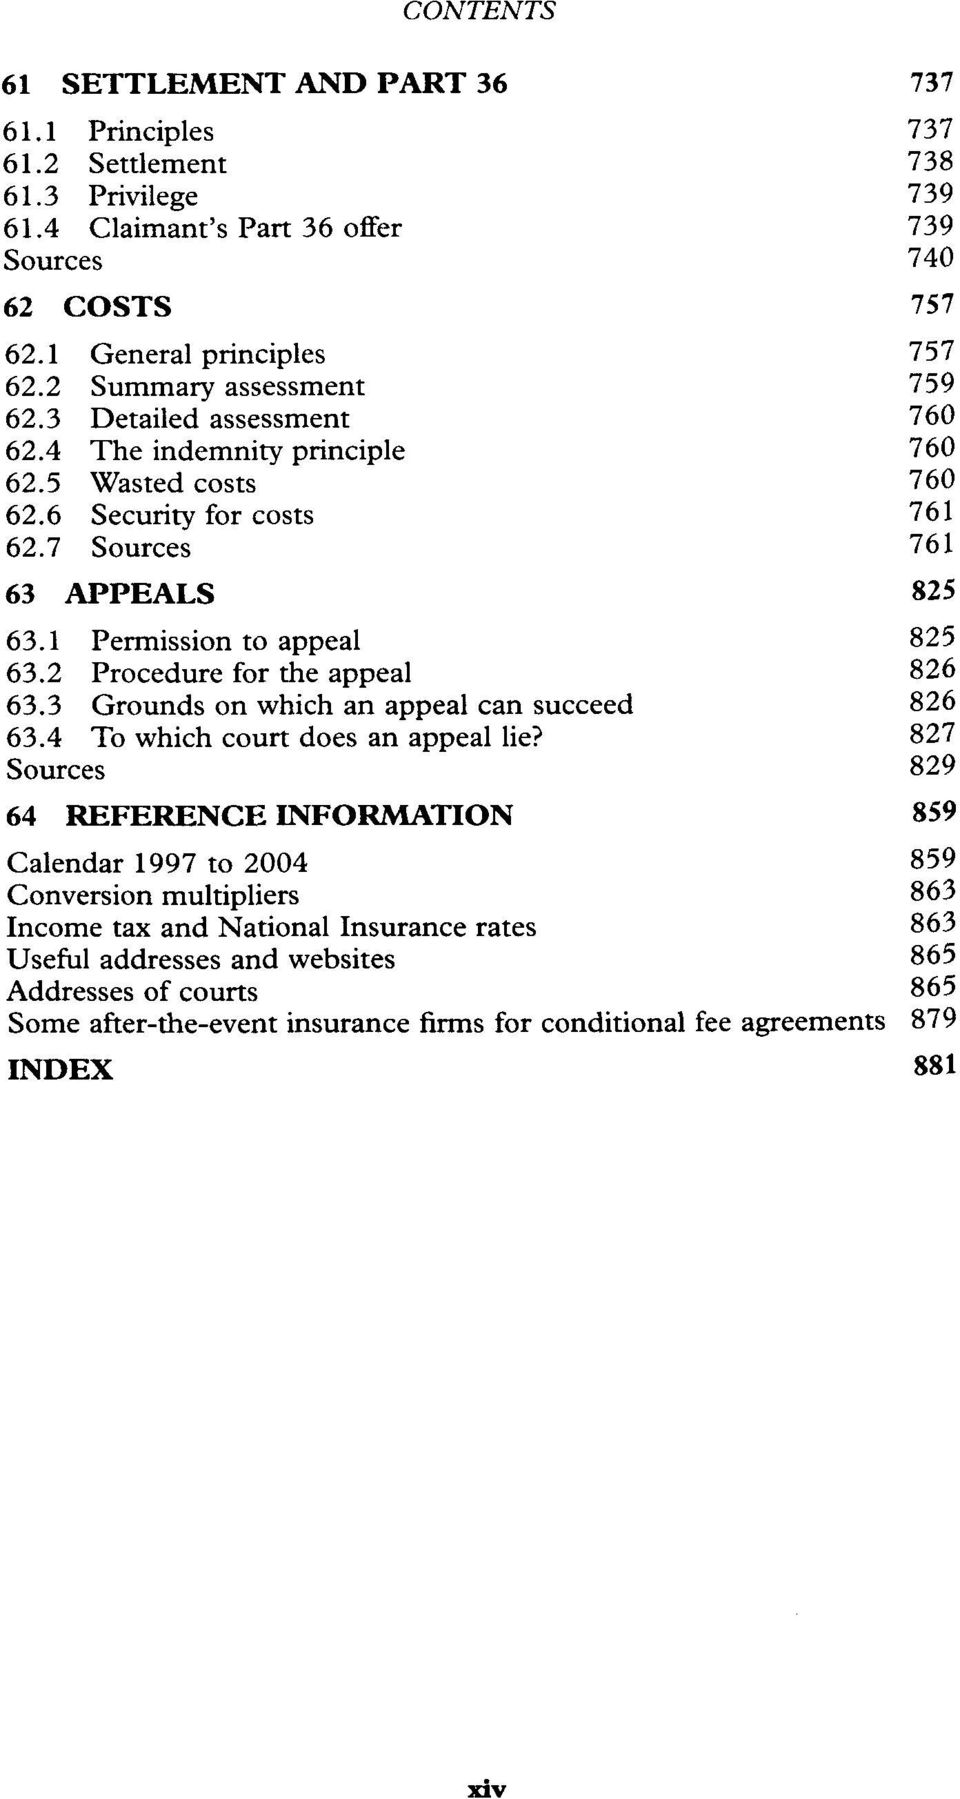 2 Procedure for the appeal 826 63.3 Grounds on which an appeal can succeed 826 63.4 To which court does an appeal lie?